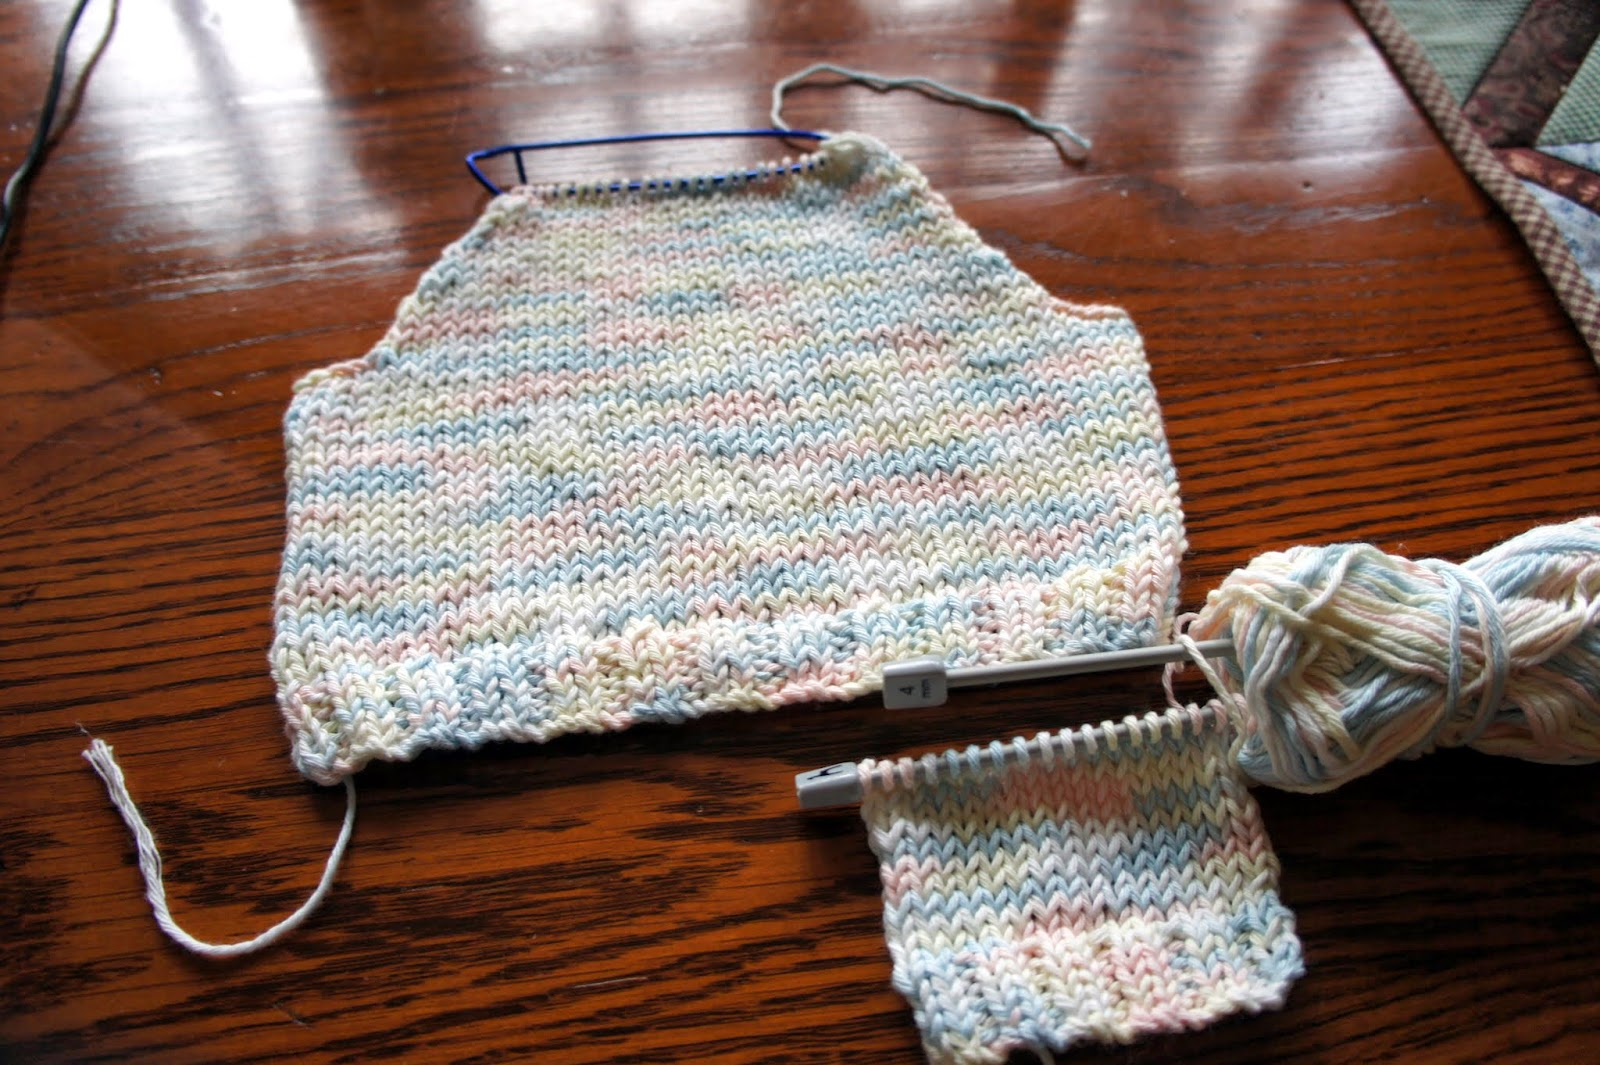 GRANNYS WORLD: Knitting - Busy on the needles